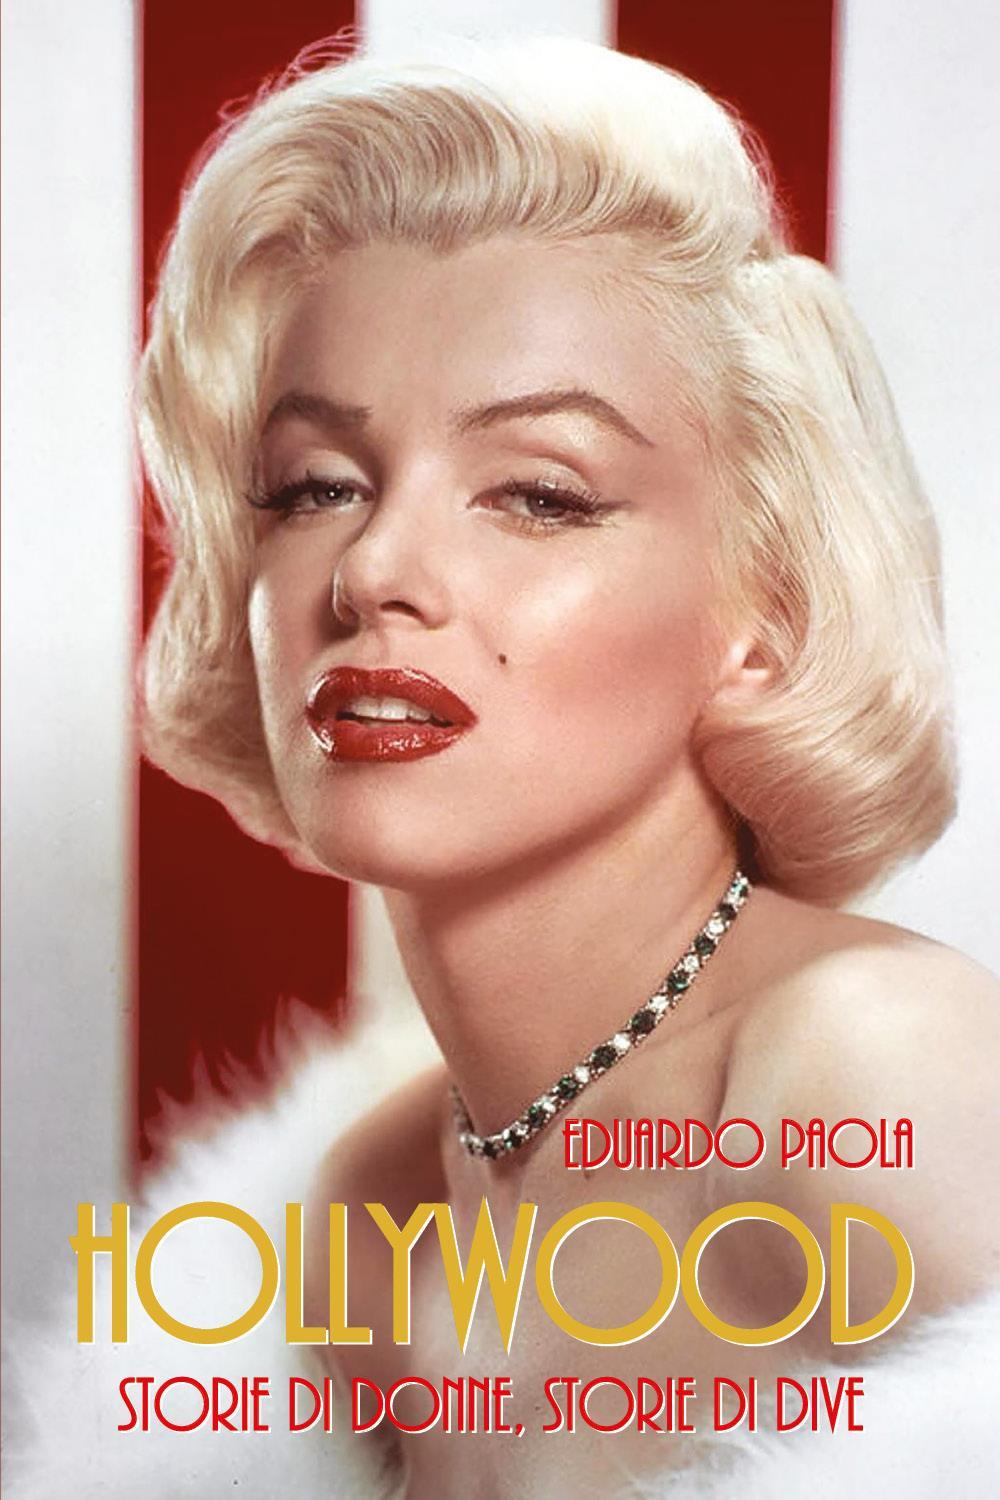 HOLLYWOOD - storie di donne, storie di dive